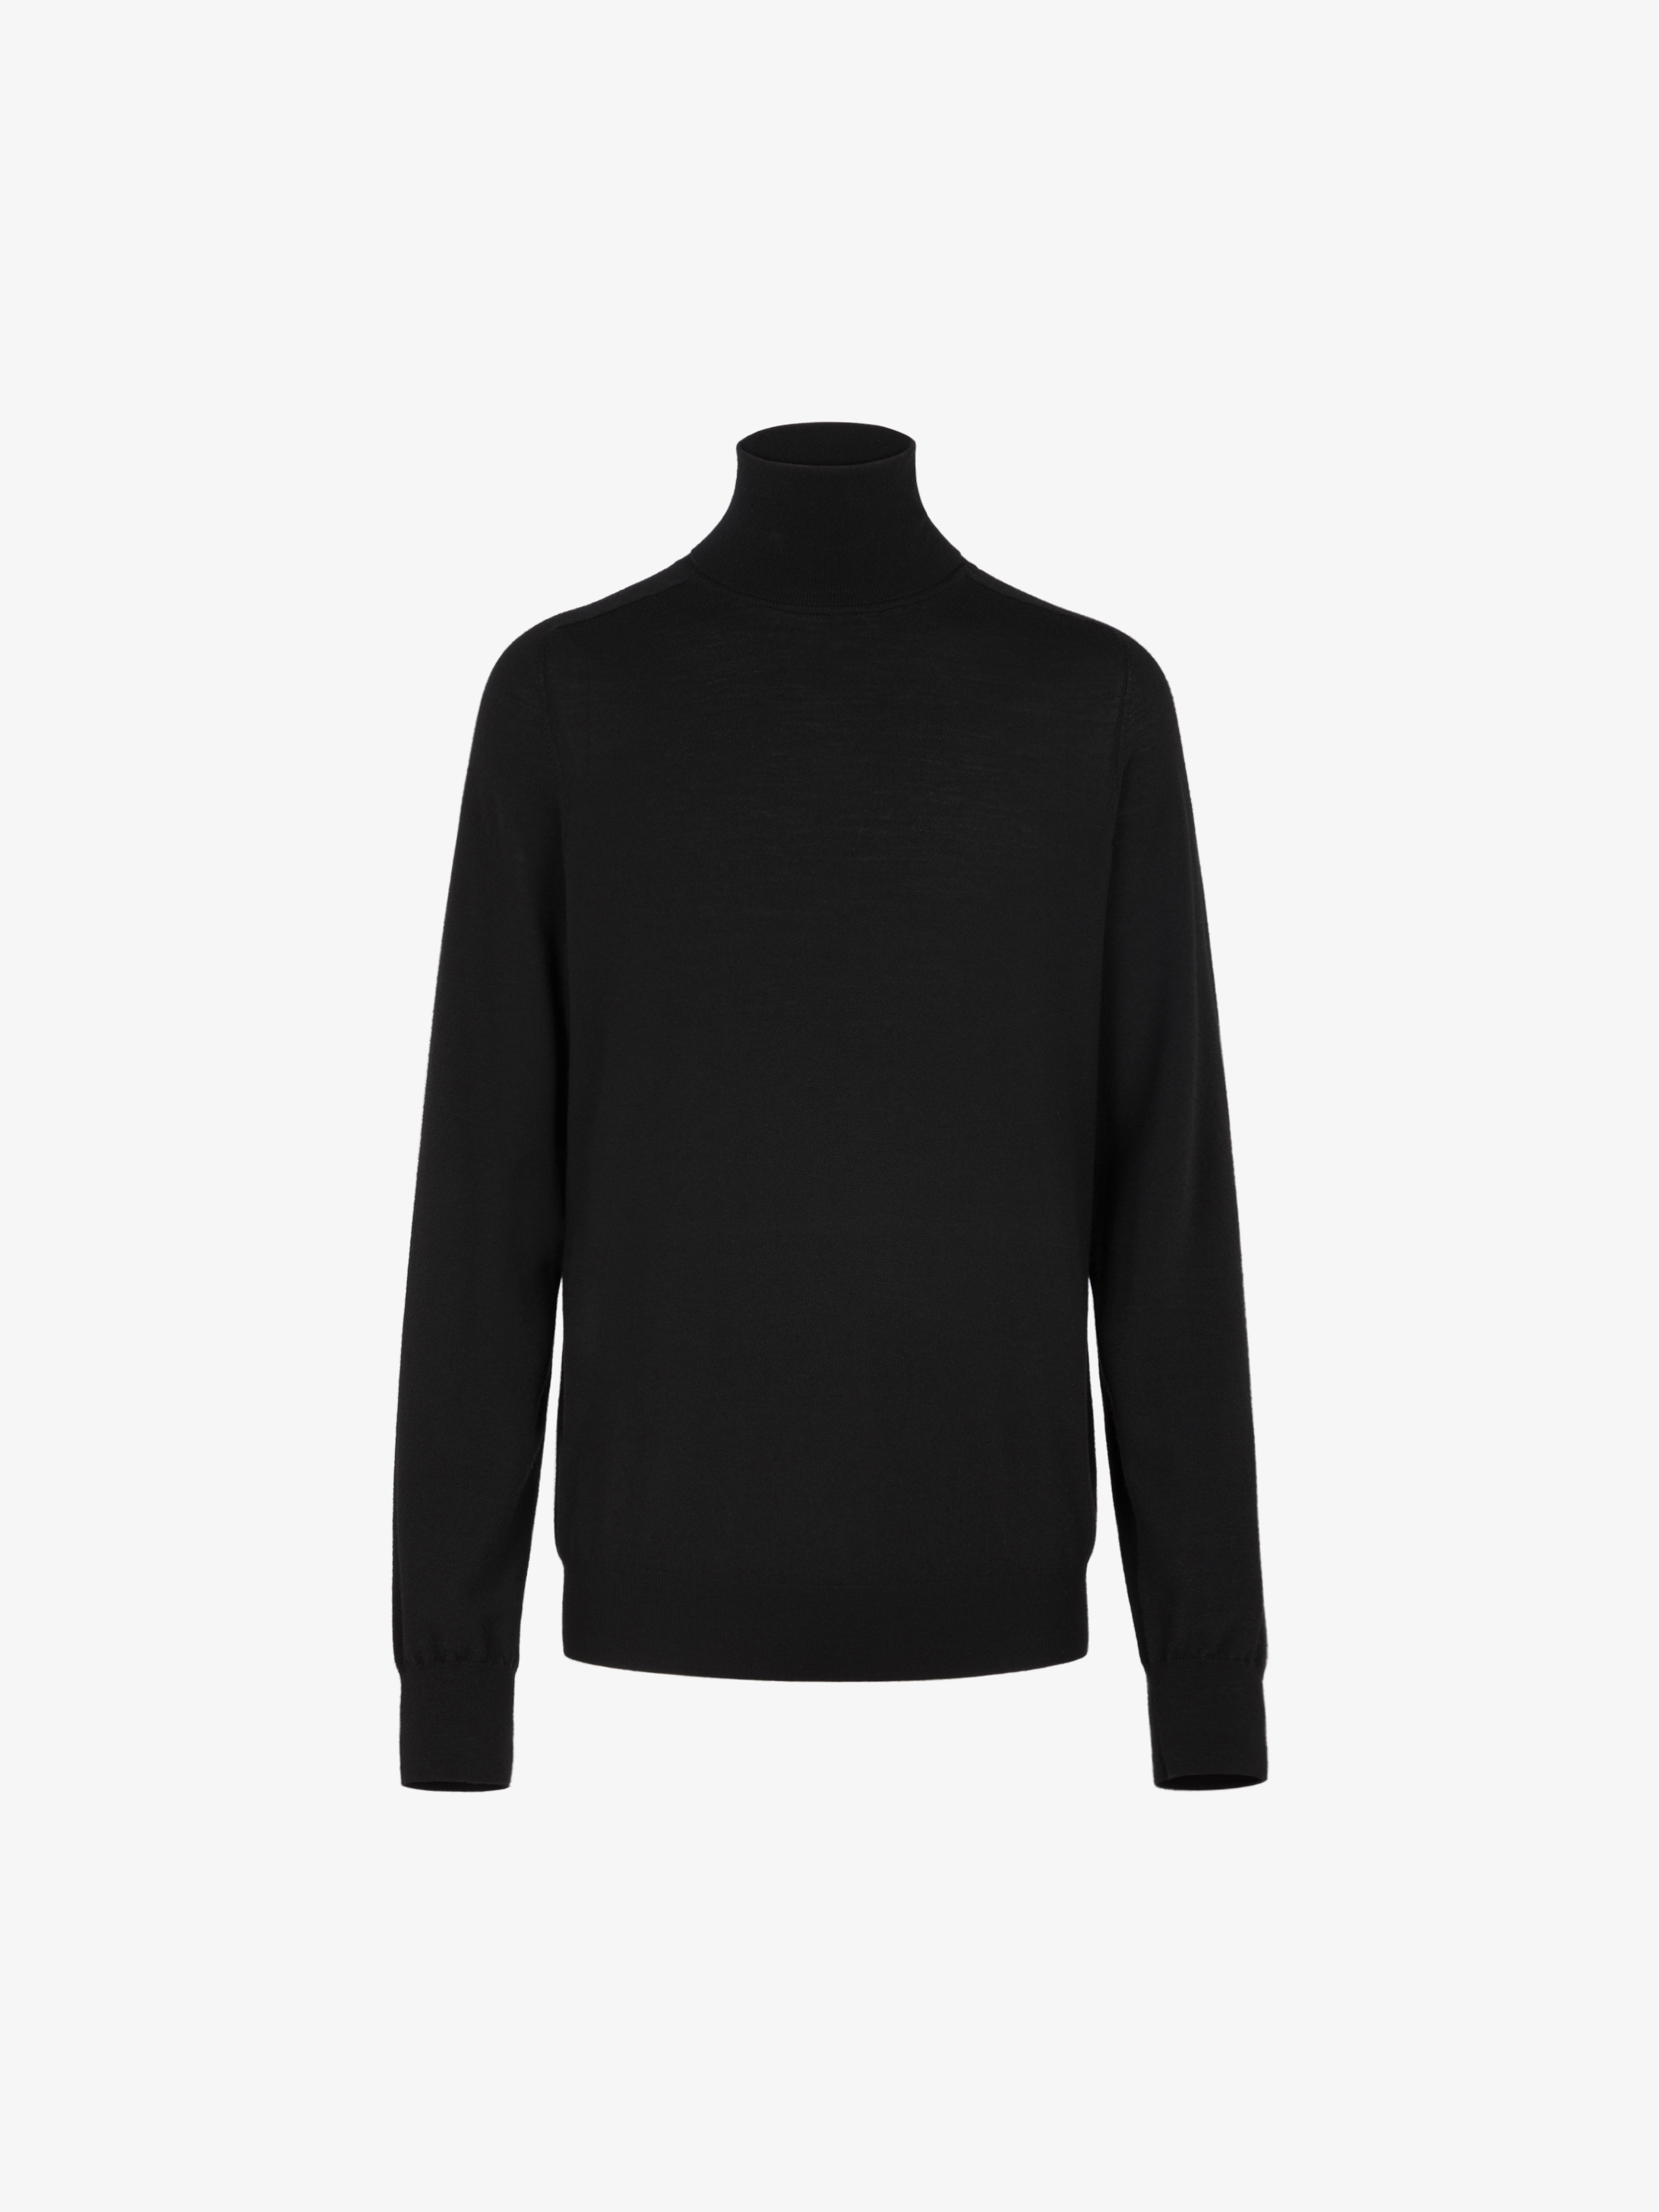 GIVENCHY ADDRESS turtleneck sweater